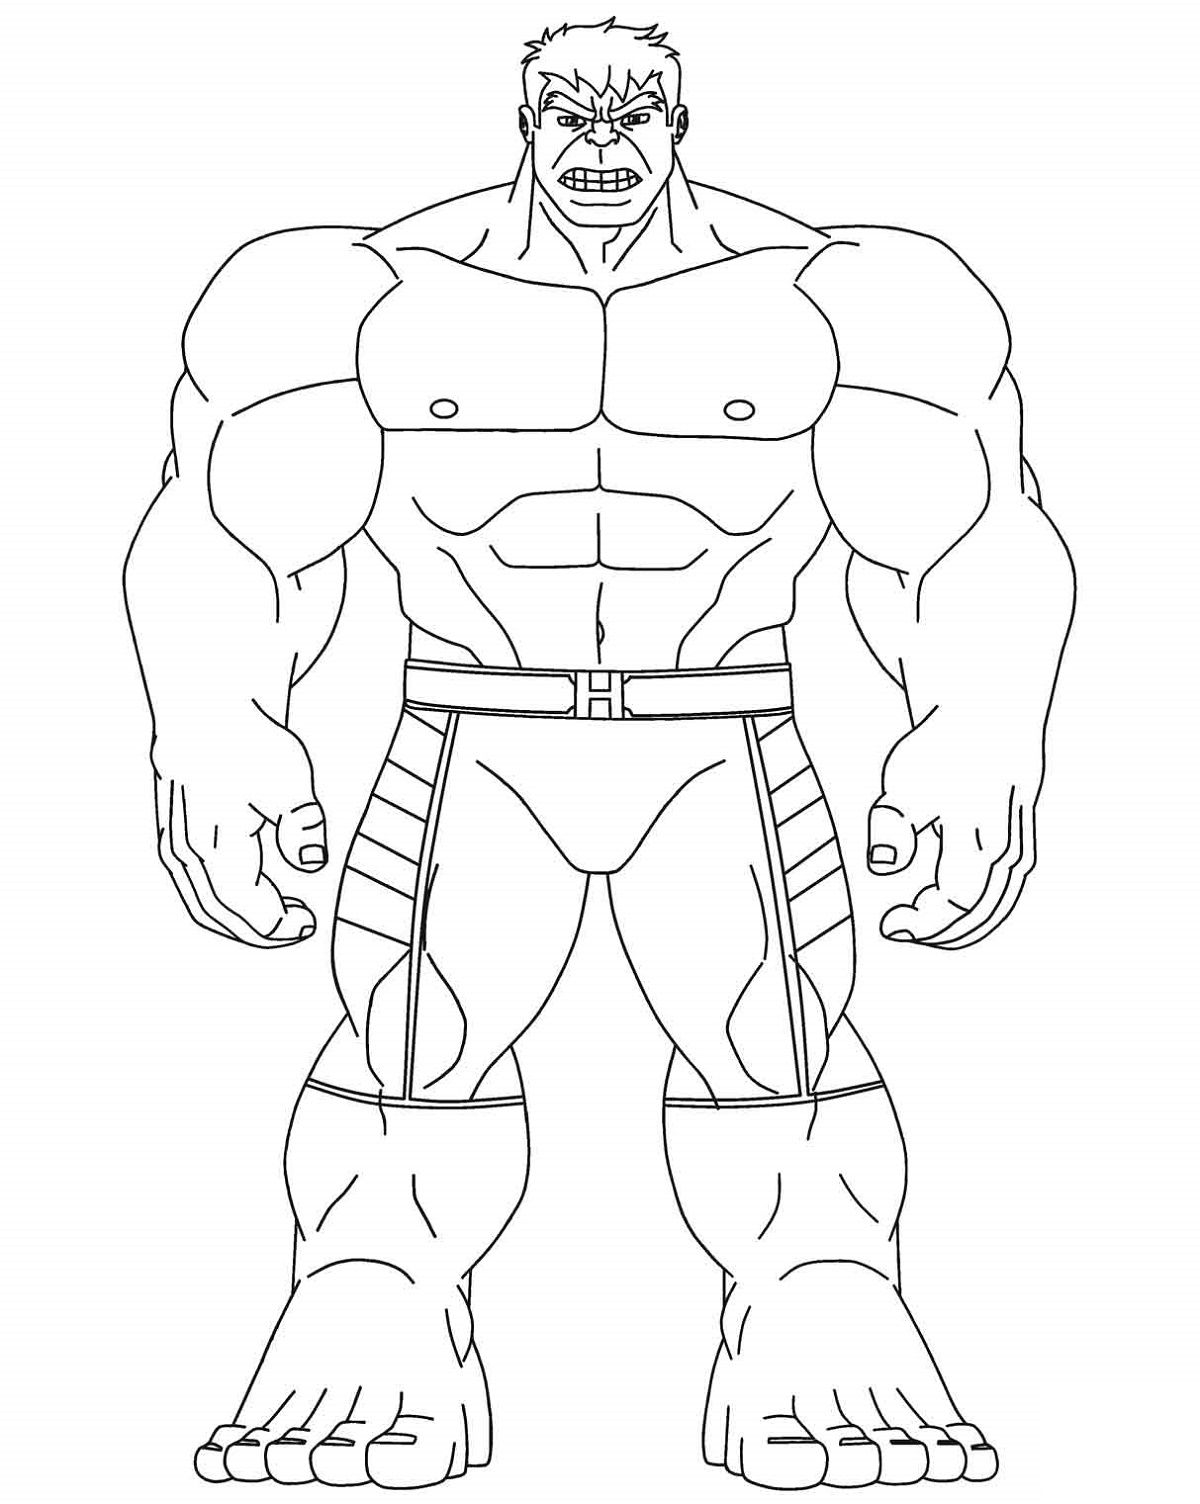 Hulk Coloring Pages Free Printable Shelter Superhero Coloring Pages Avengers Coloring Avengers Coloring Pages